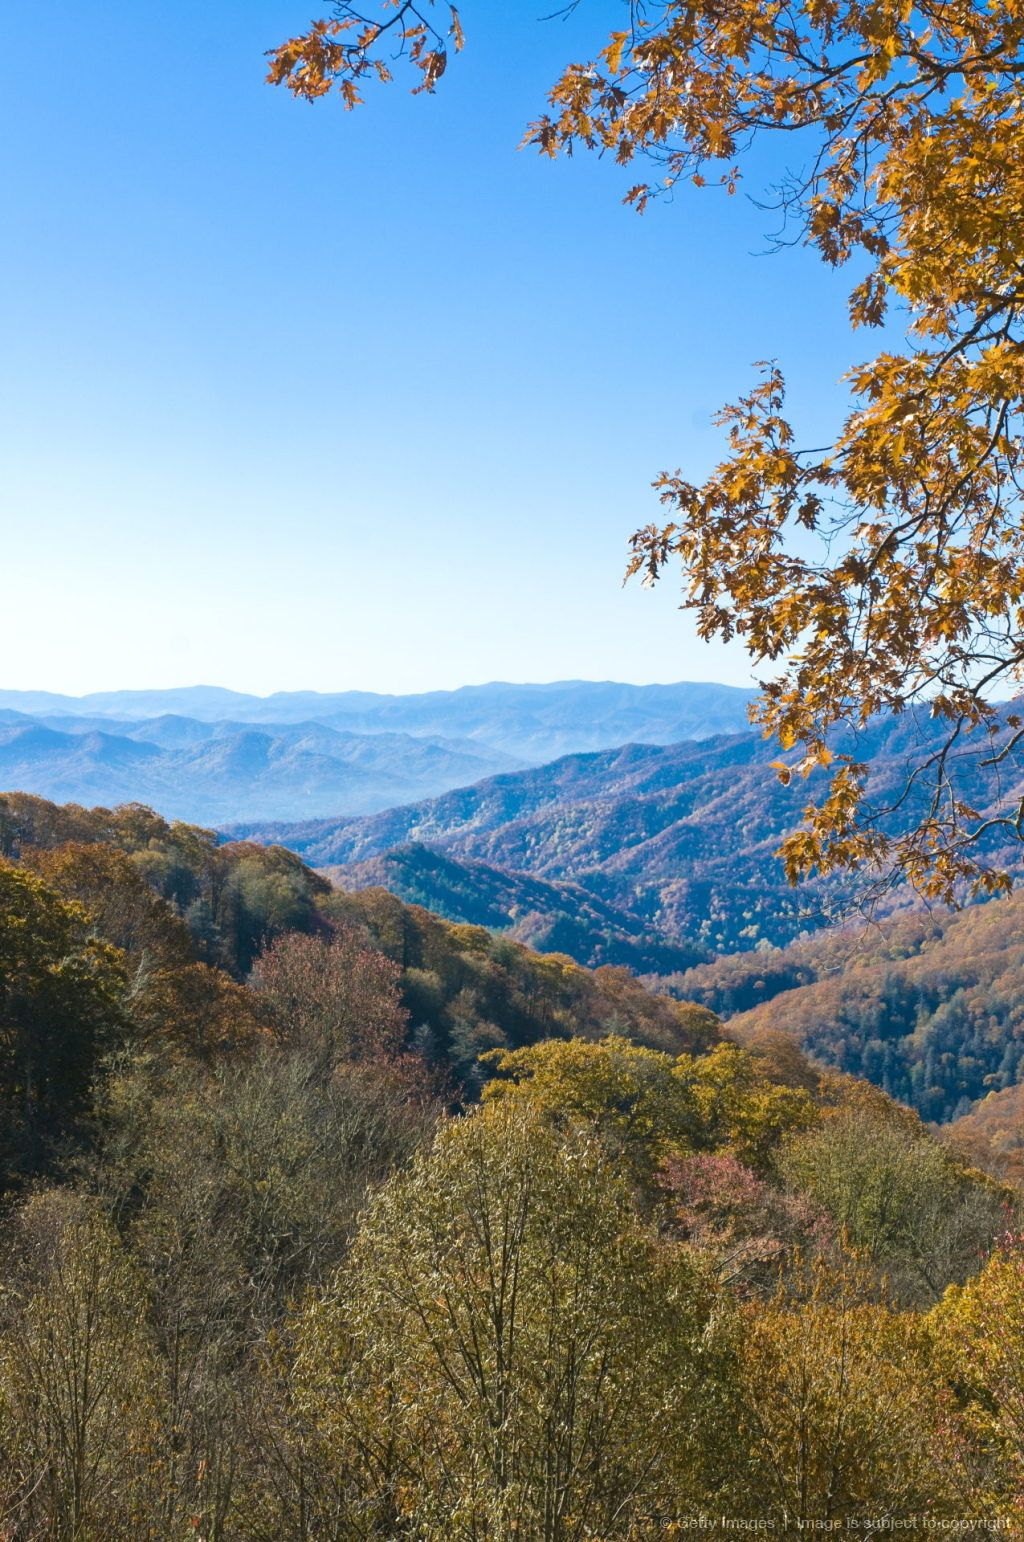 Image detail for -View over valley with colourful foliage in the Indian summer, Great Smoky Mountains National Park, UNESCO World Heritage Site, Tennessee, United States...